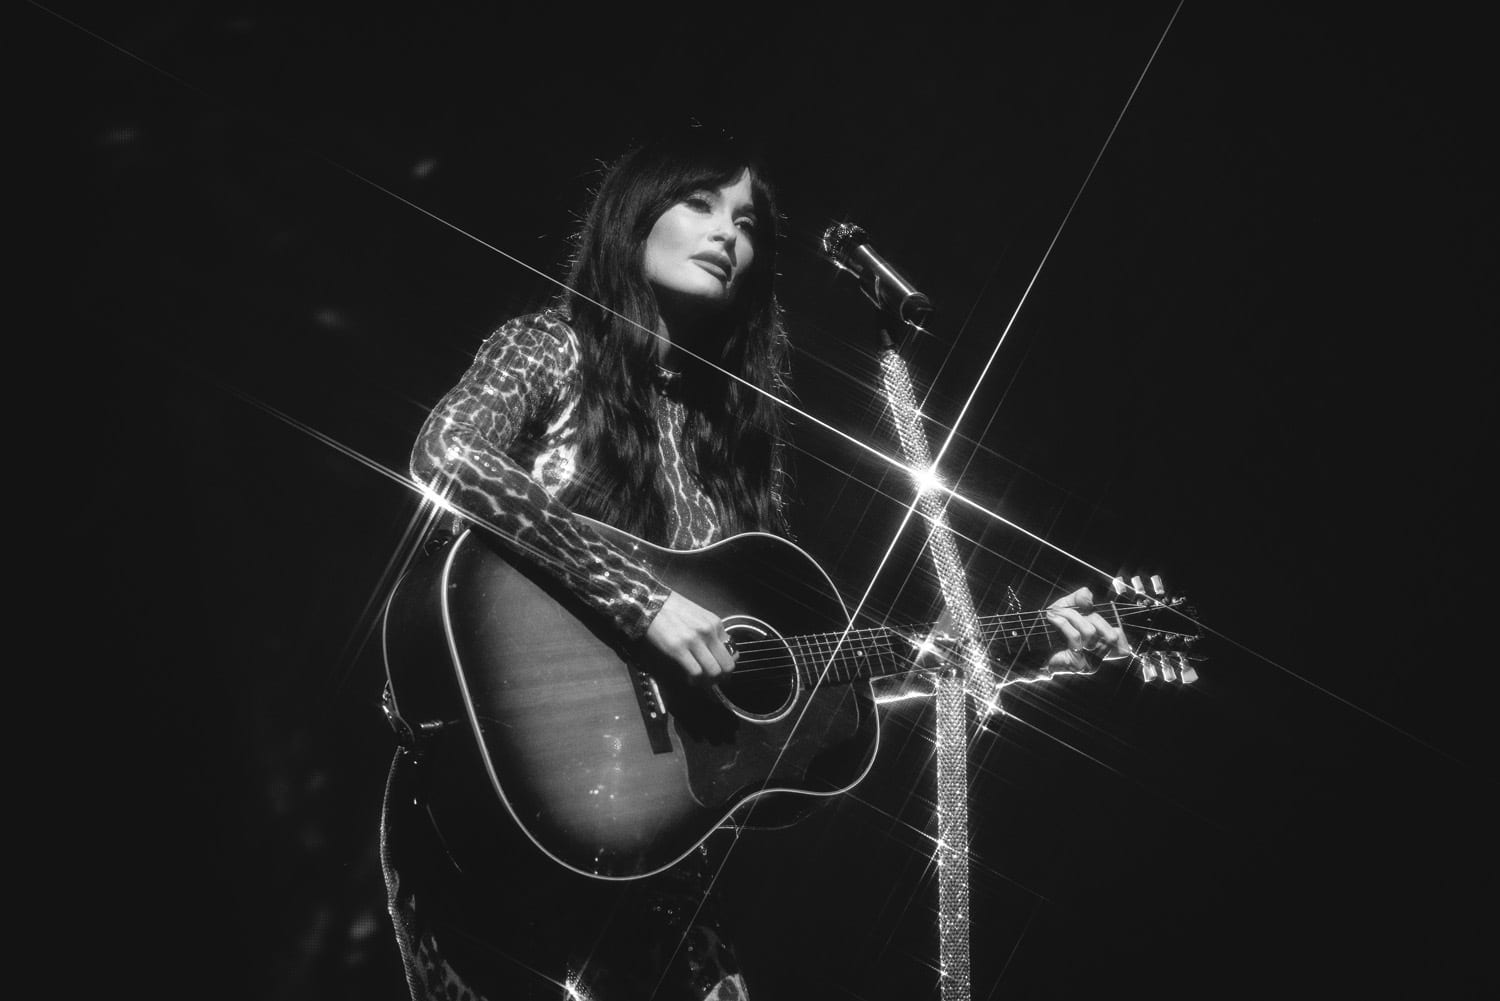 AWS Intersect Festival Kasey Musgraves